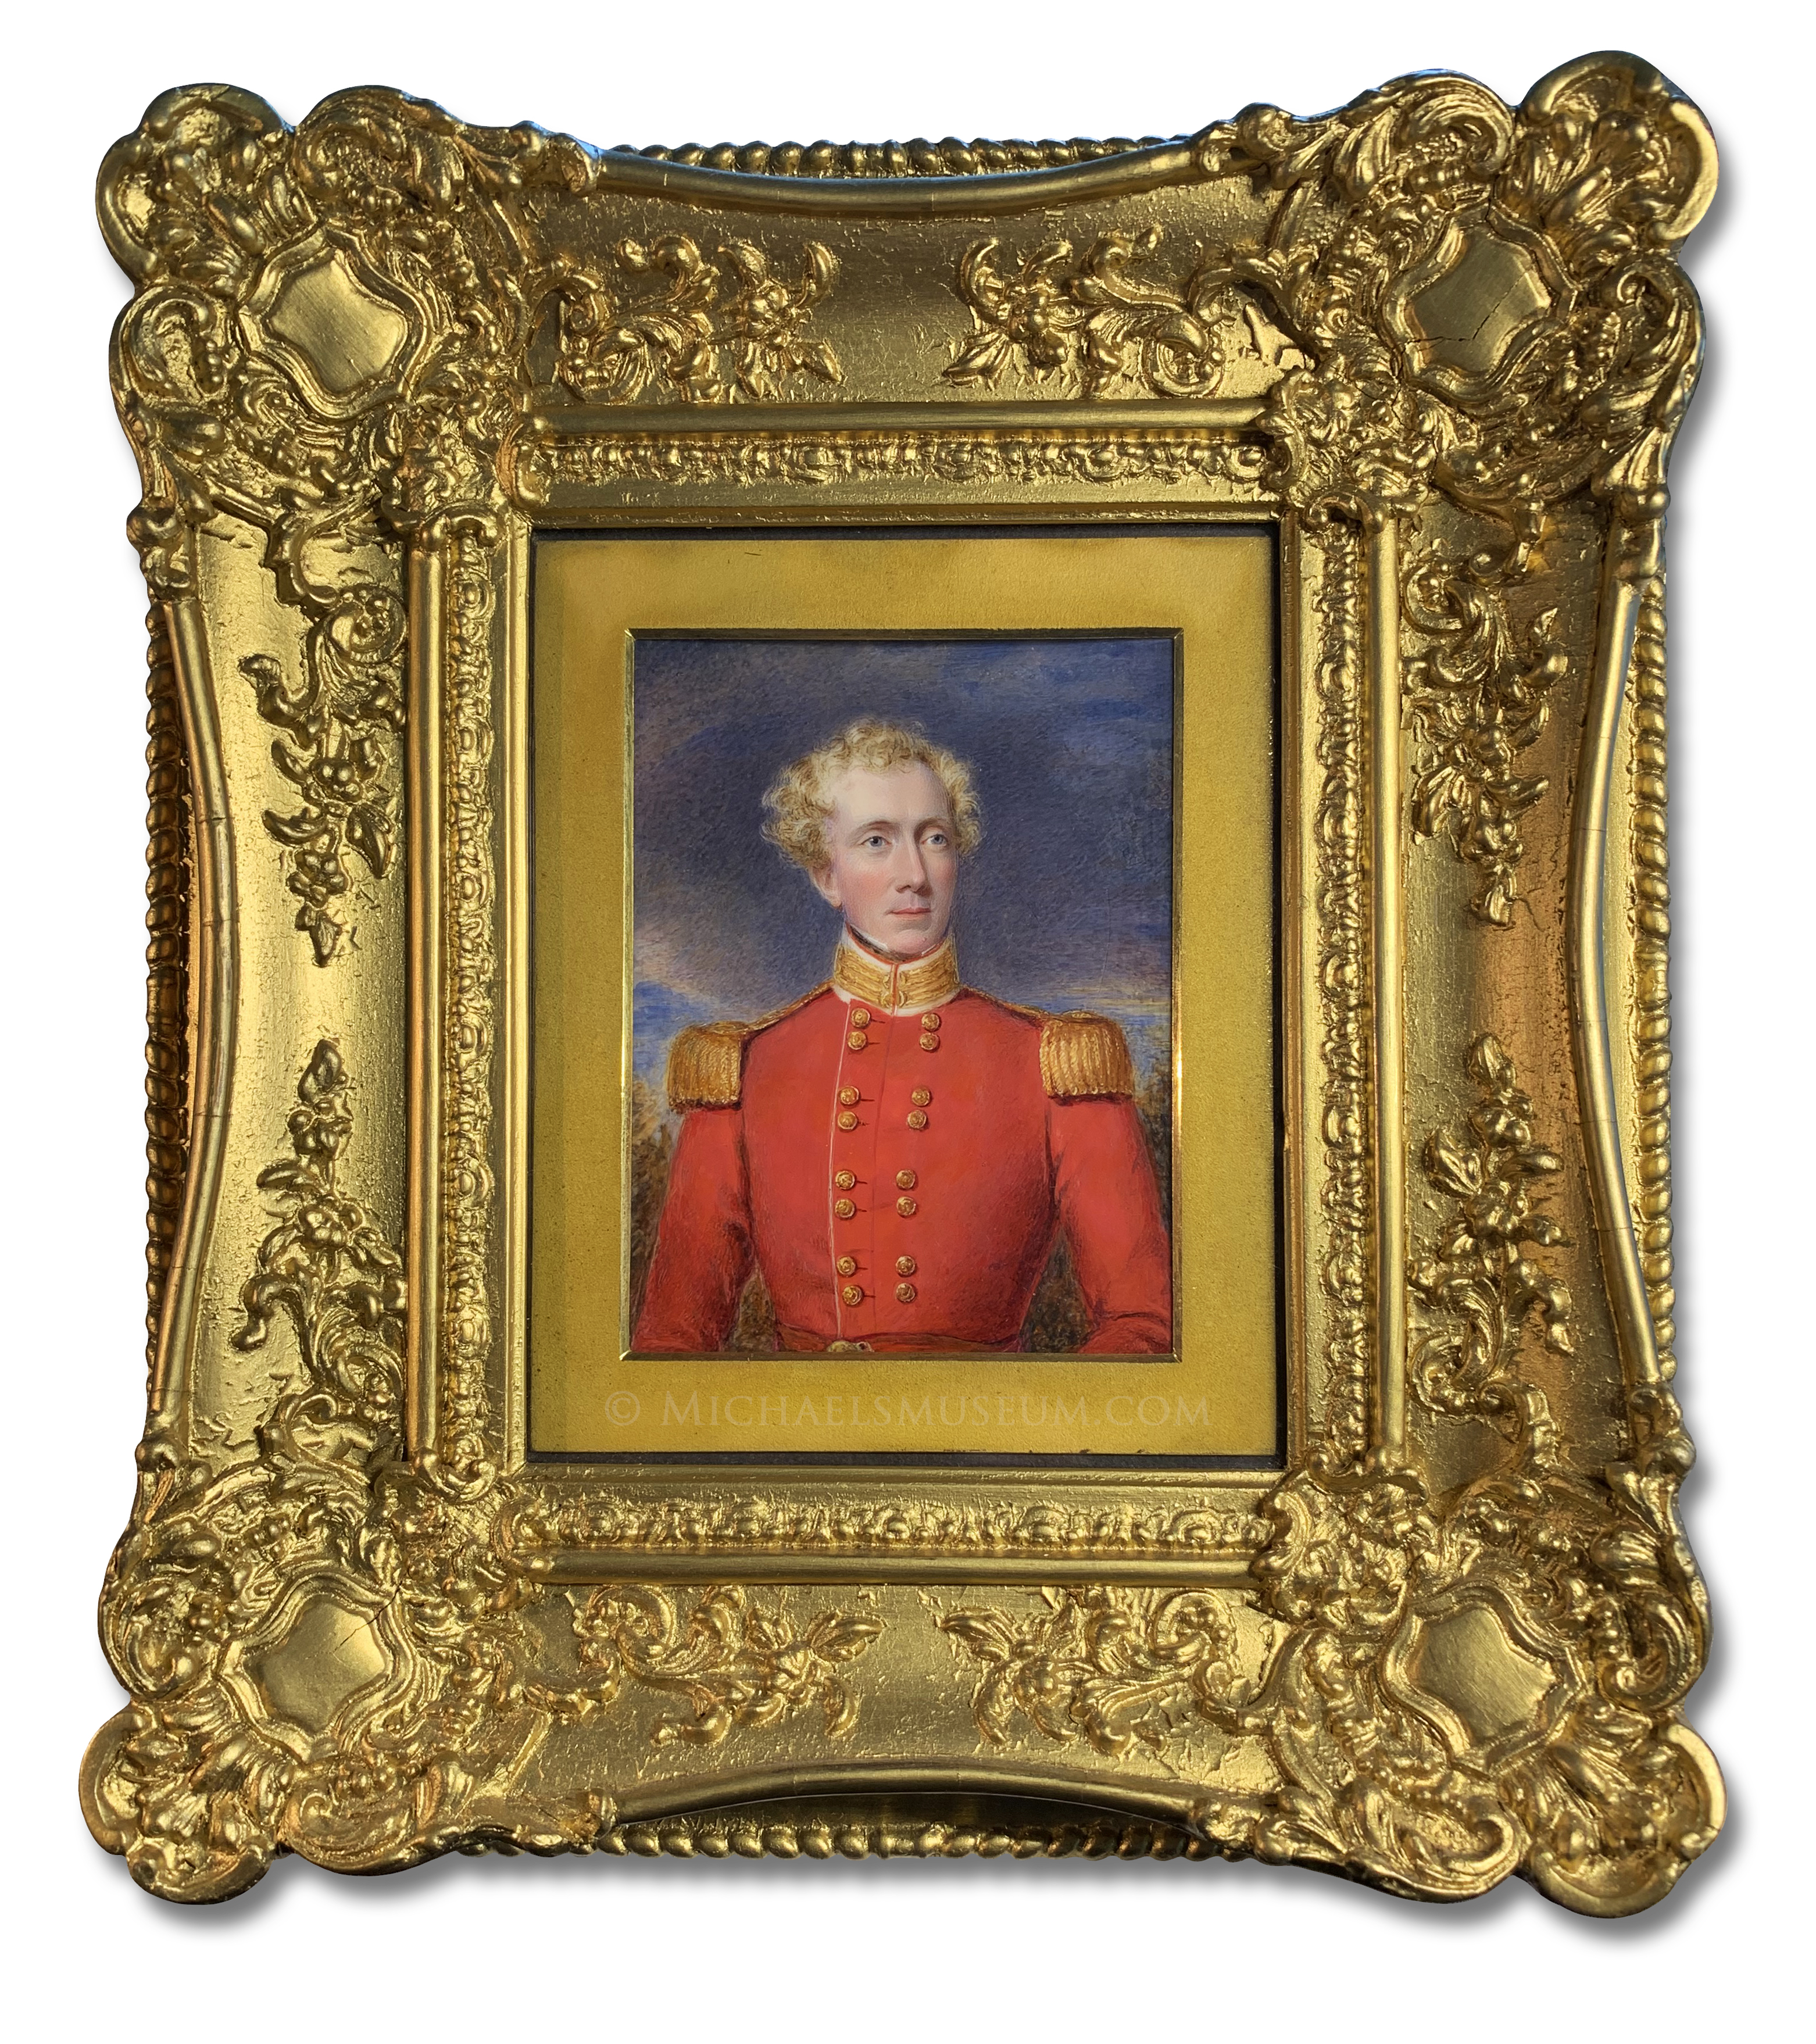 Enlarged version of miniature portrait of Lieut. Col. James Noble of the 29th Regiment of the Madras Native Infantry